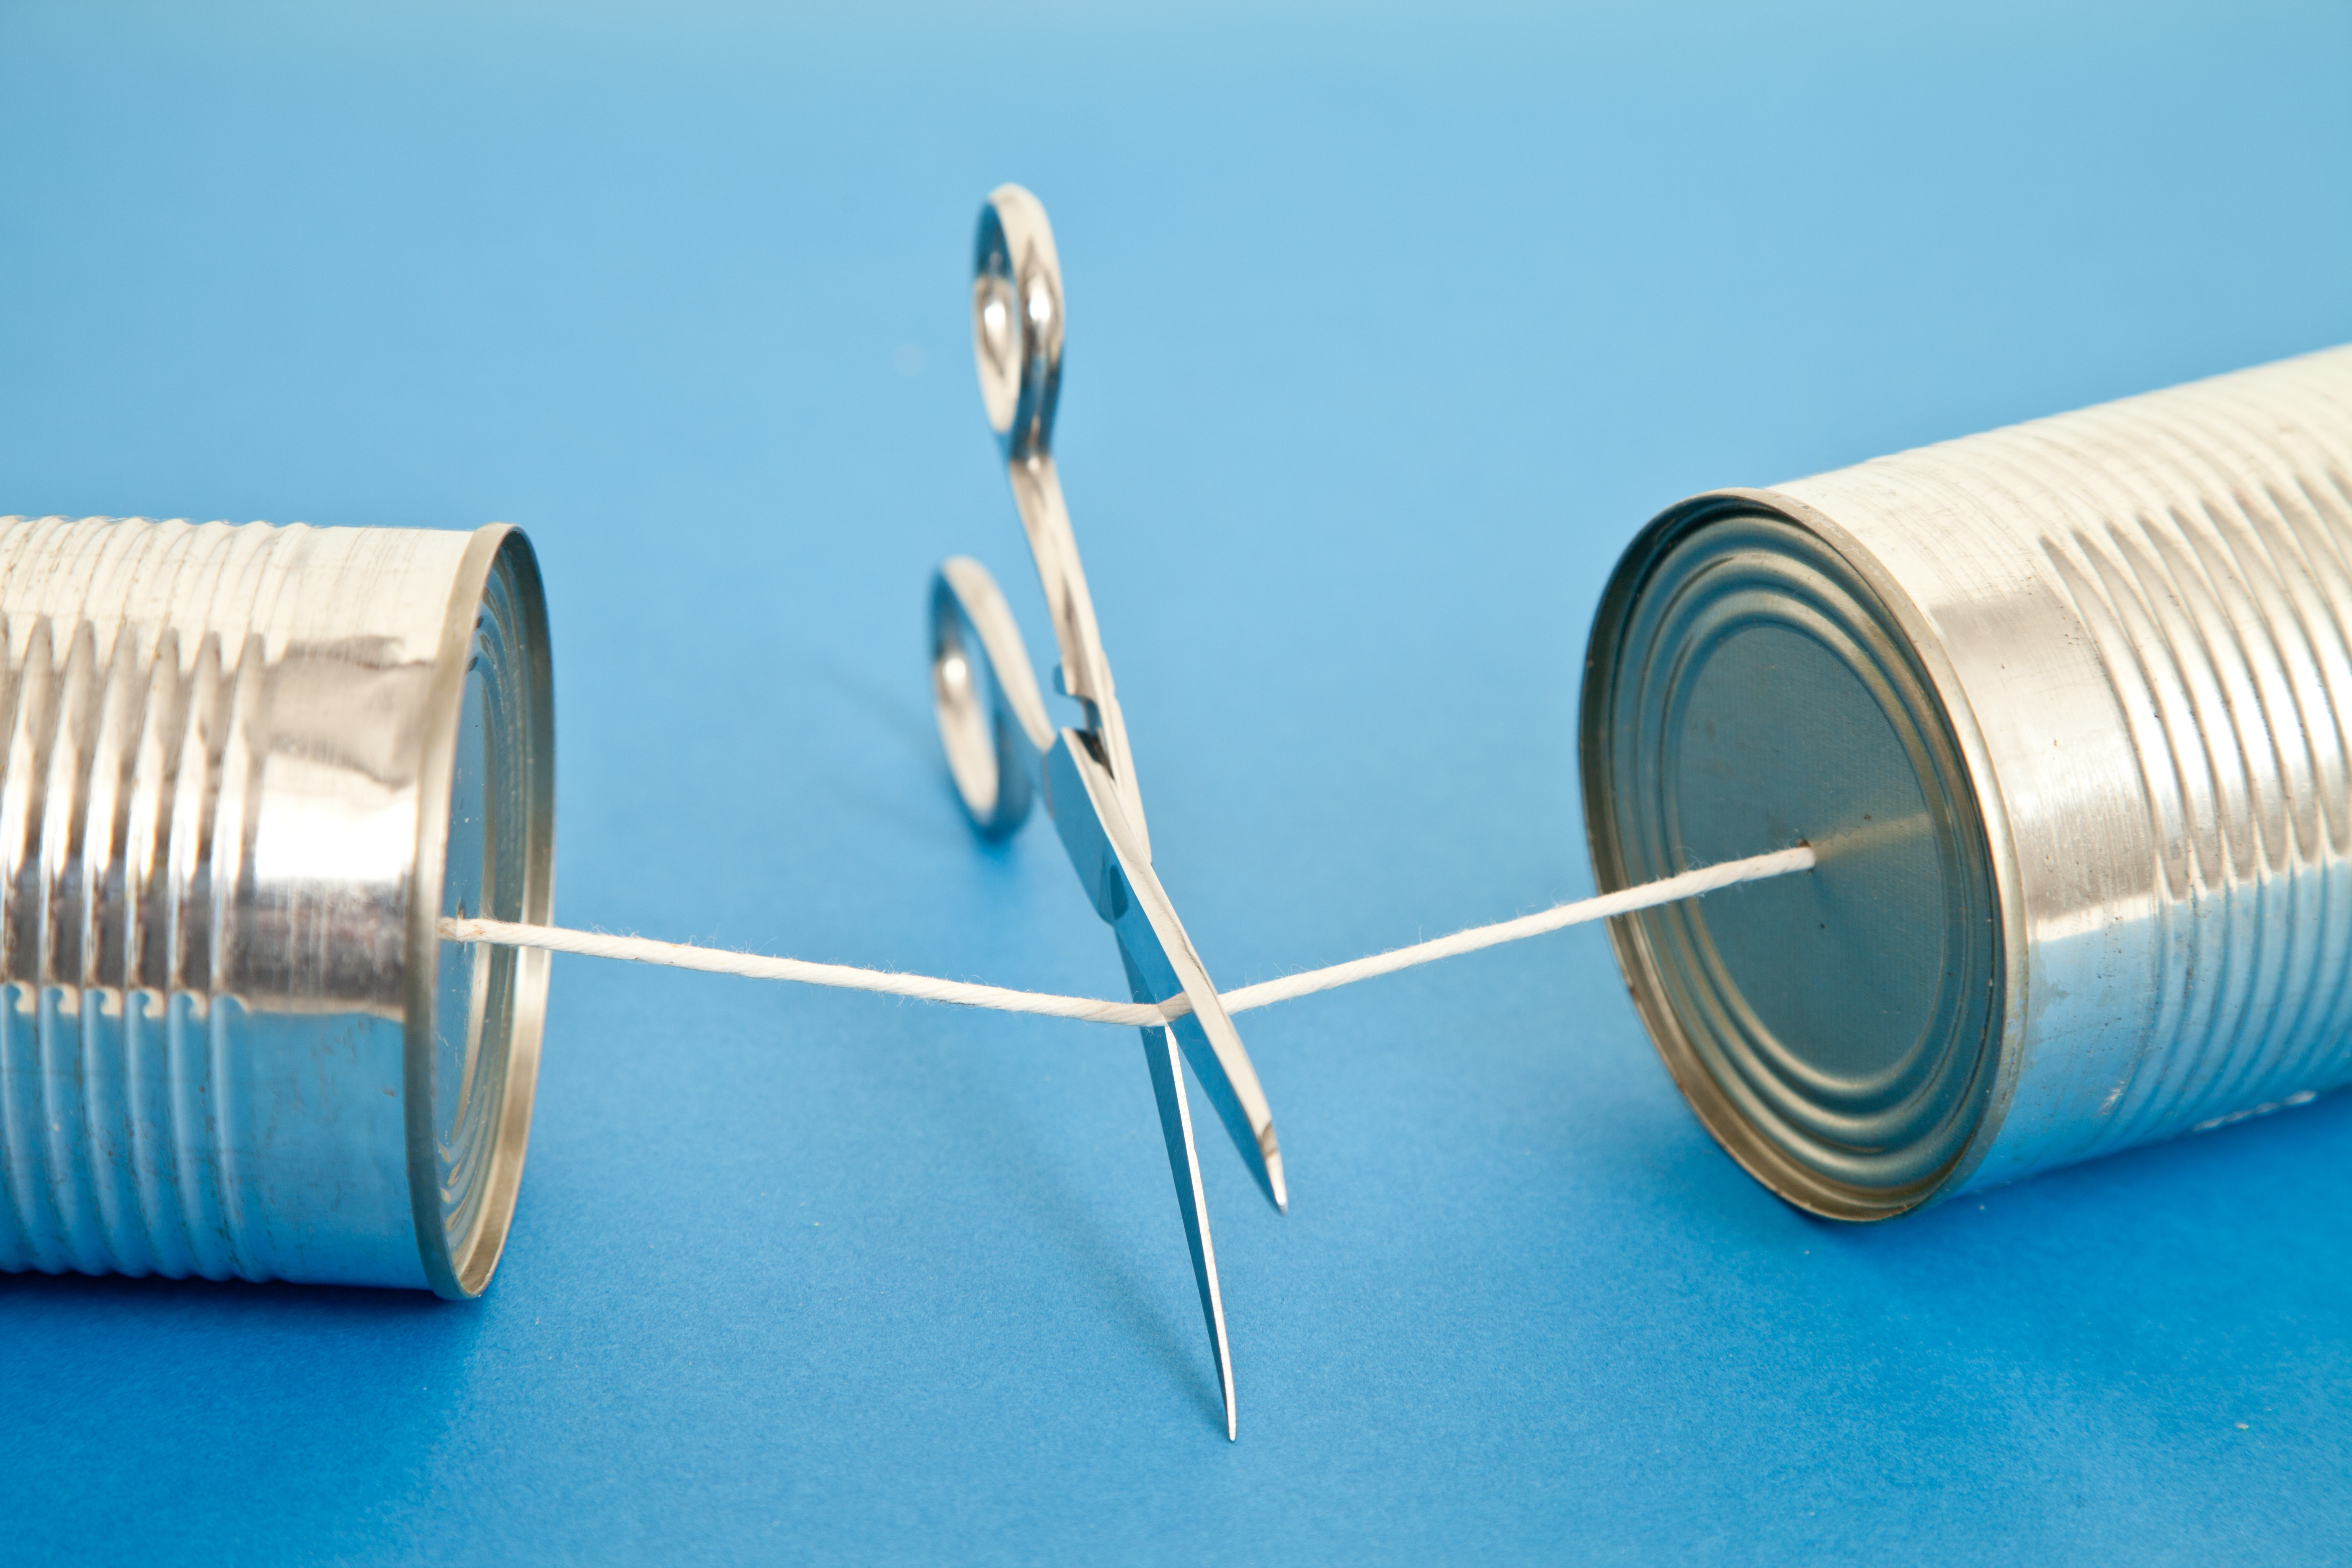 cans-with-string.jpg